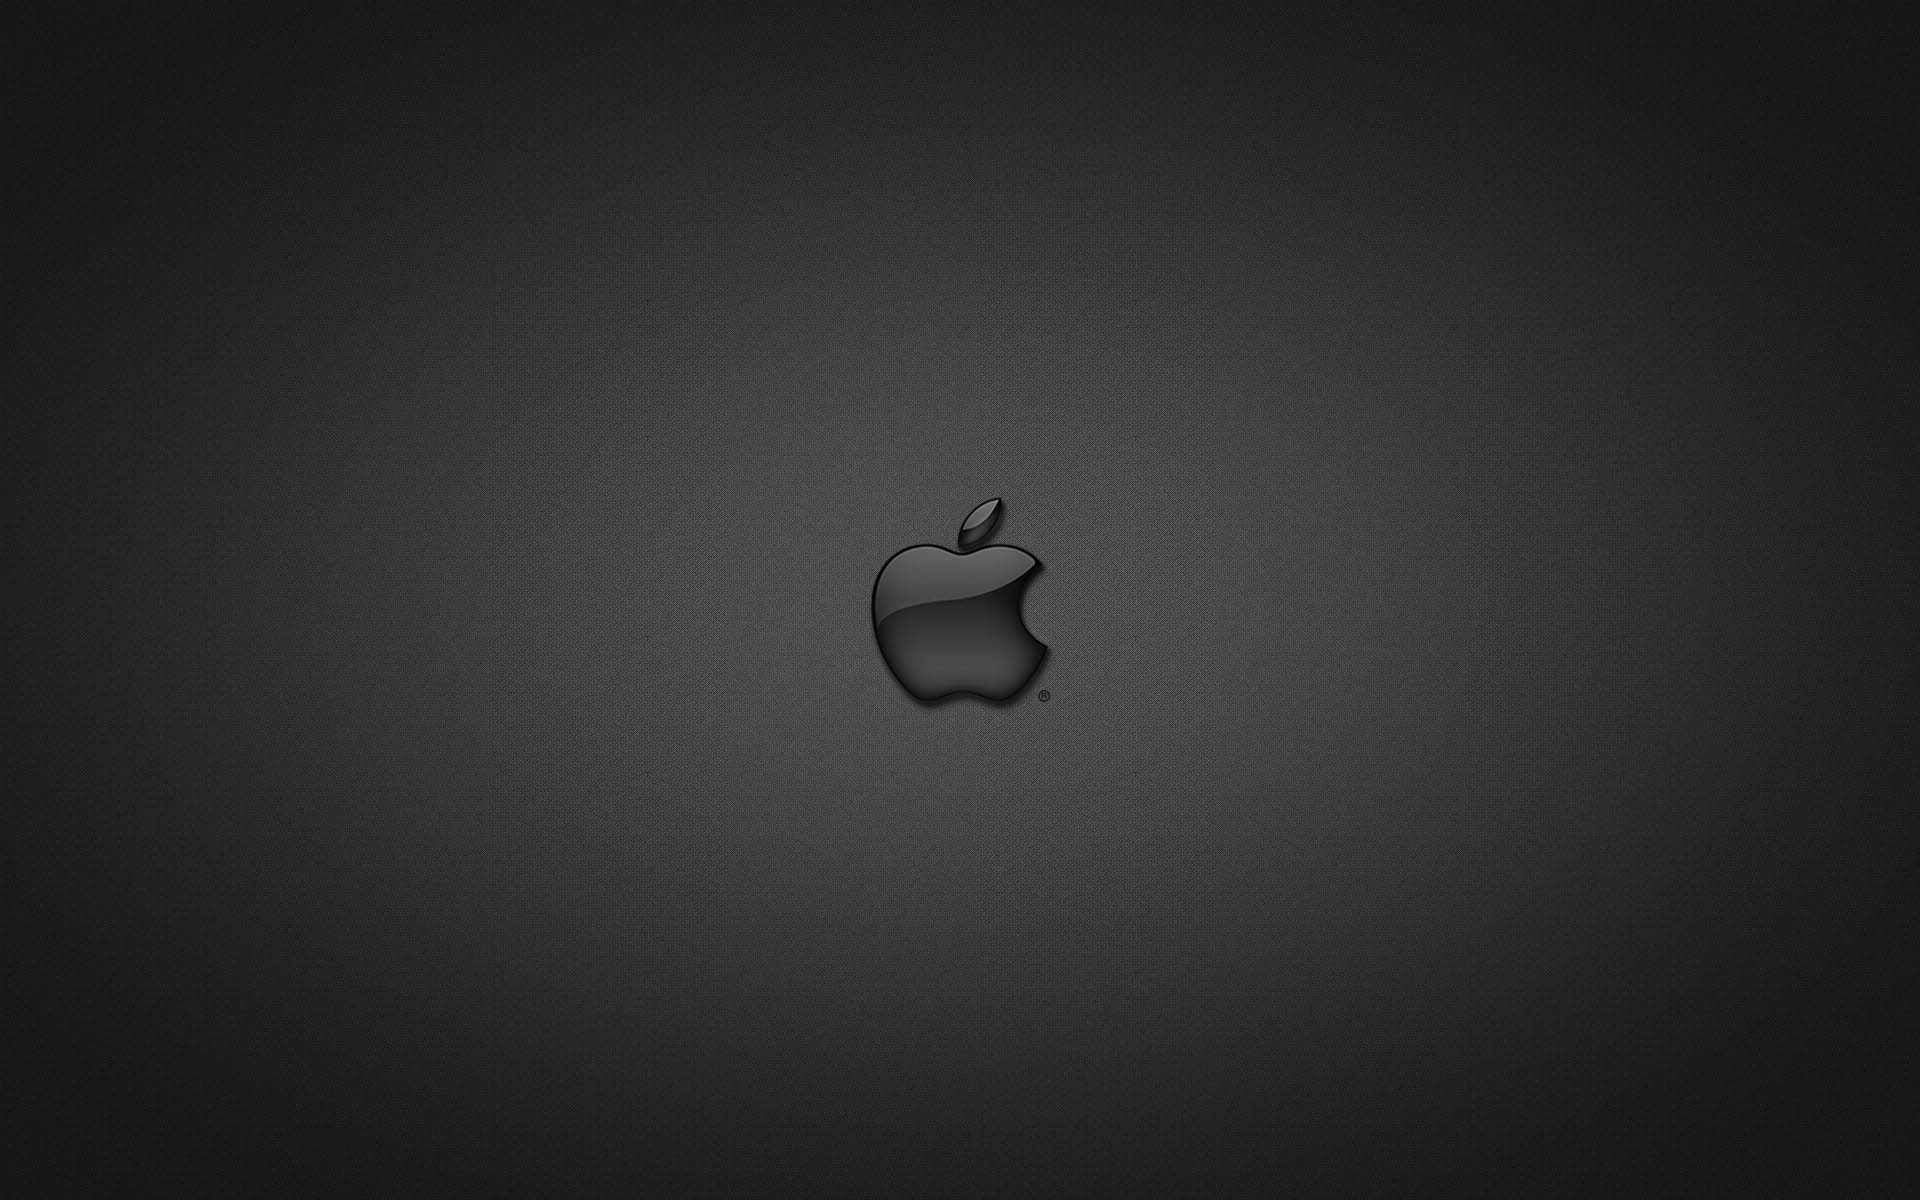 Apple Logo Wallpapers HD black